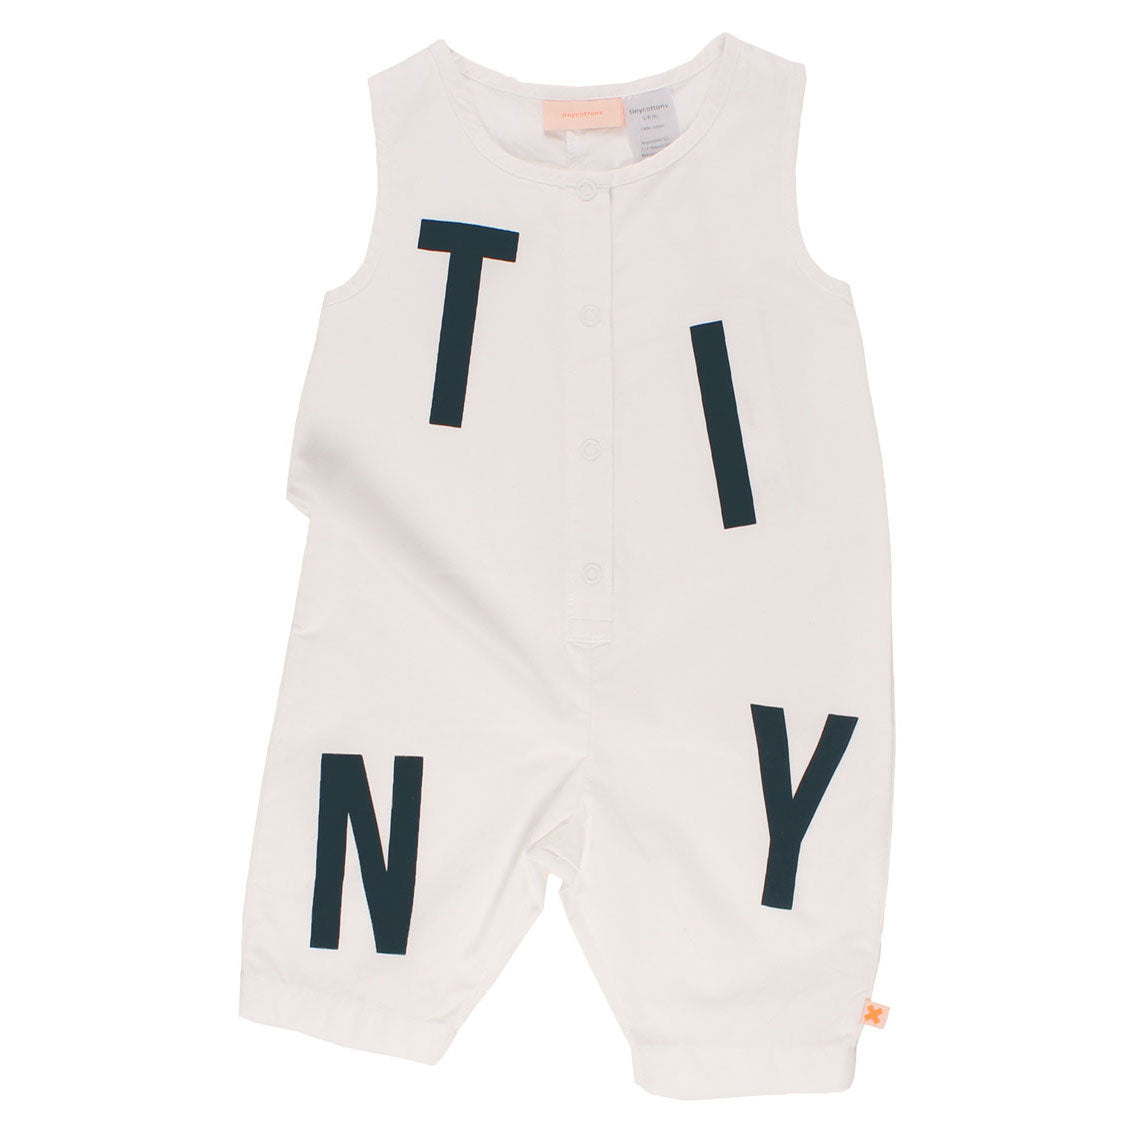 Tiny Baby Woven Onepiece